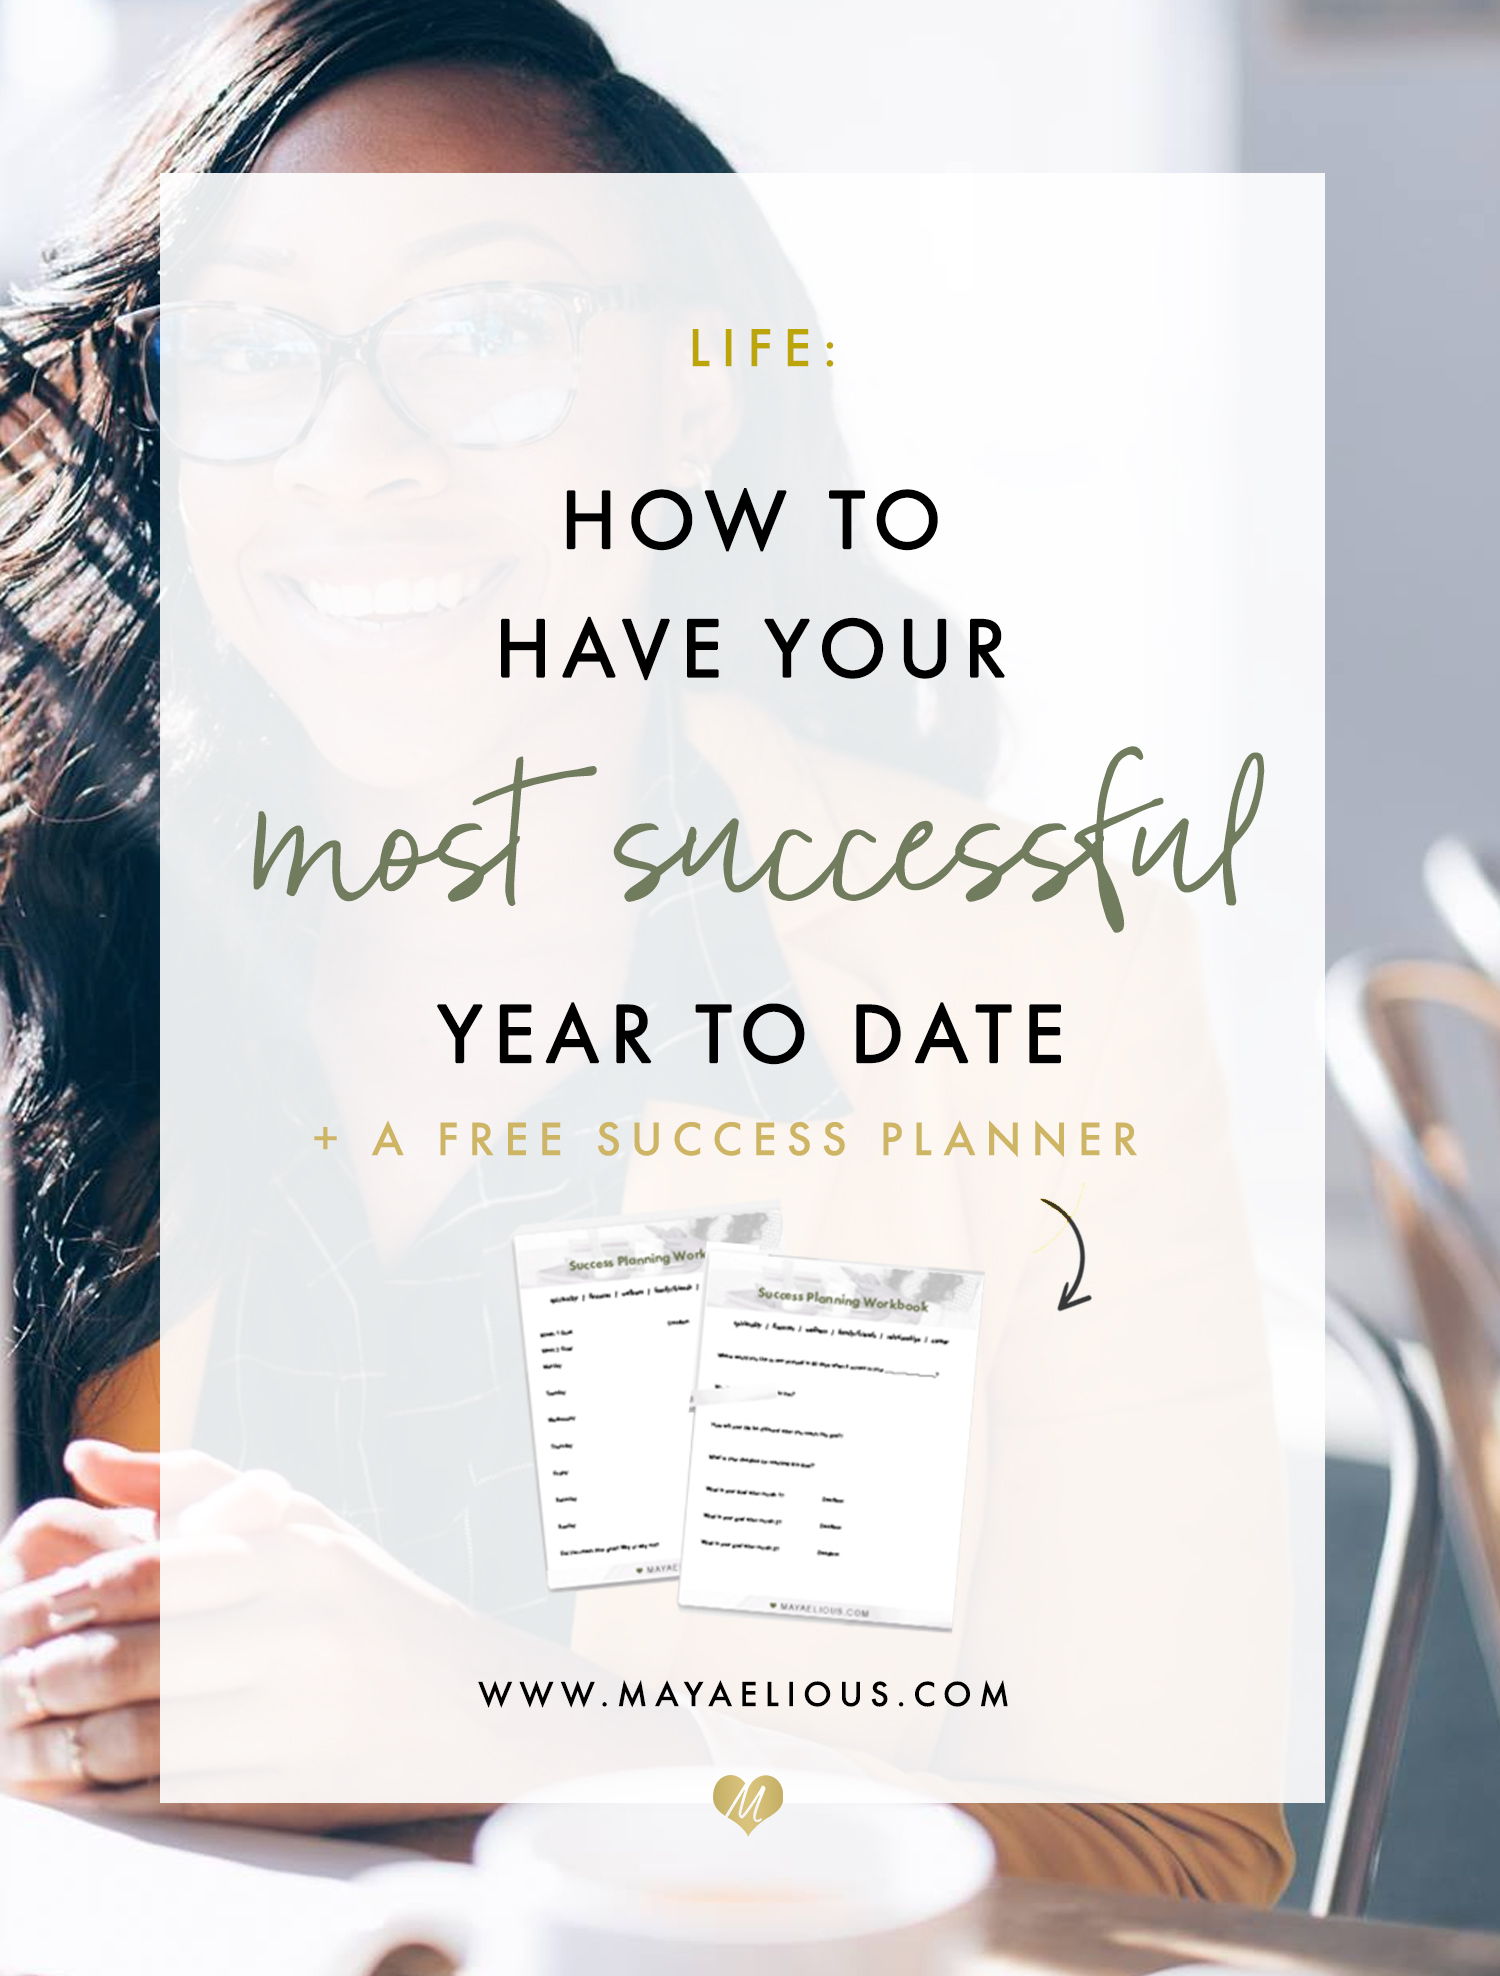 me_featuredgraphic_successfulyear